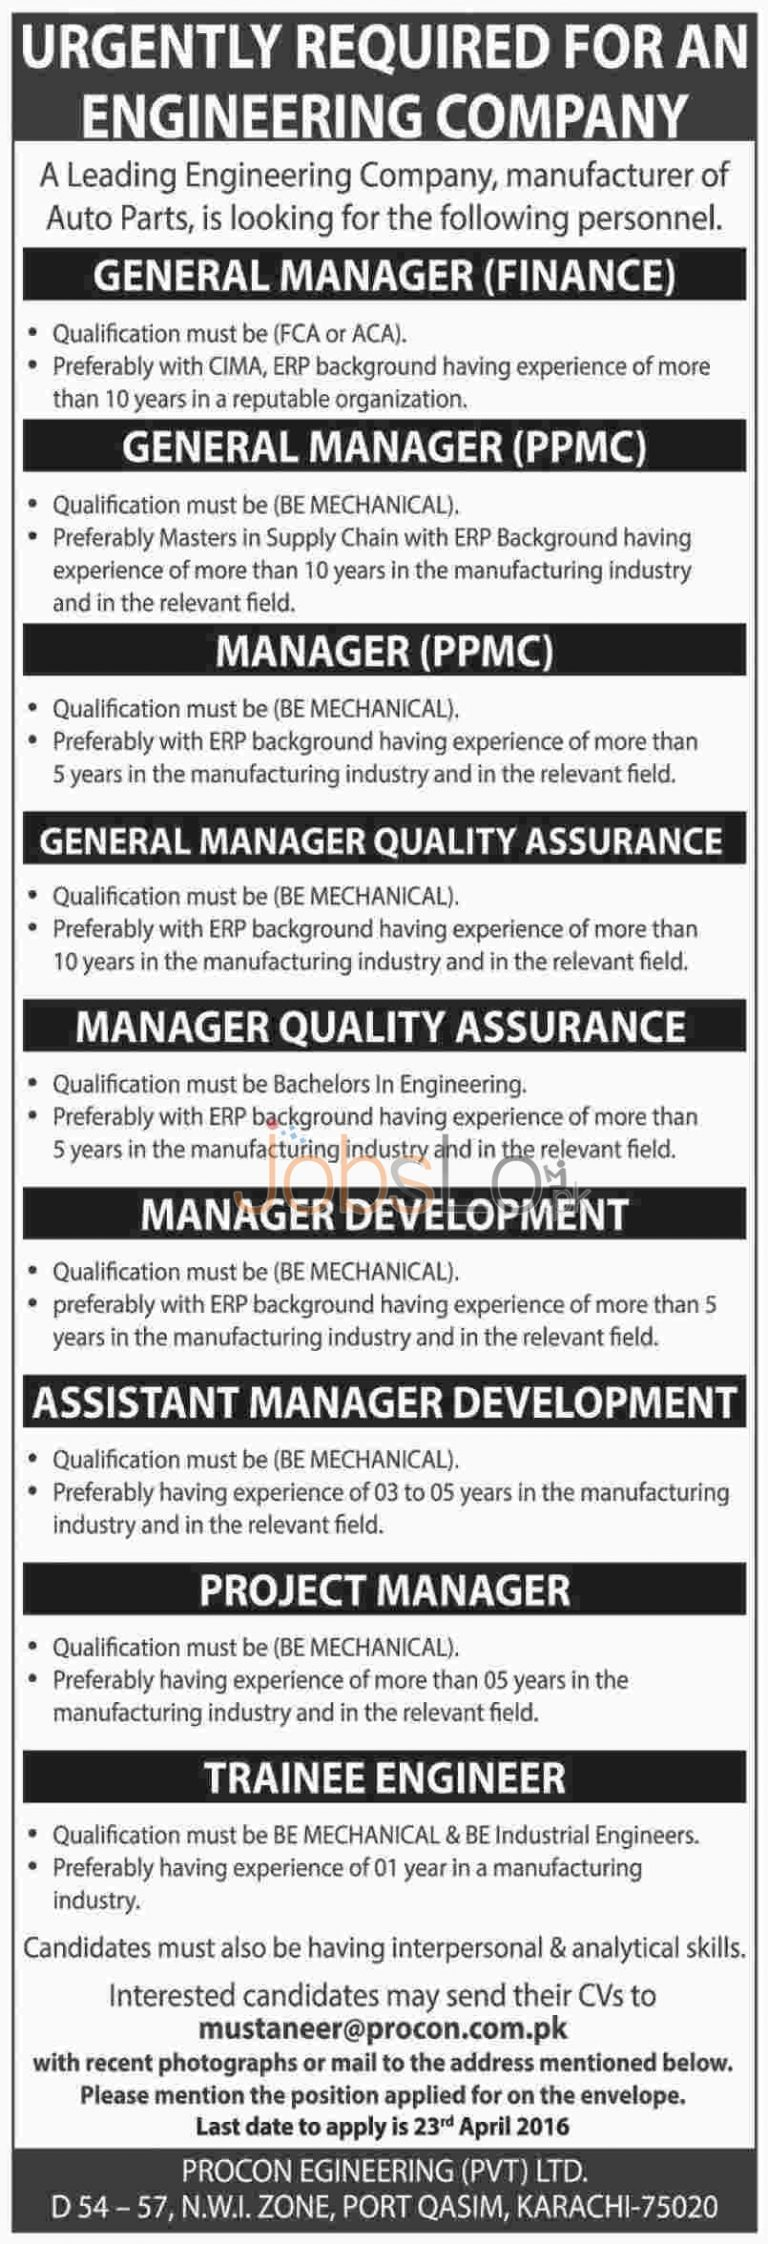 Procon Engineering Company Karachi Jobs April 2016 For Managers & Trainee Engineers Latest